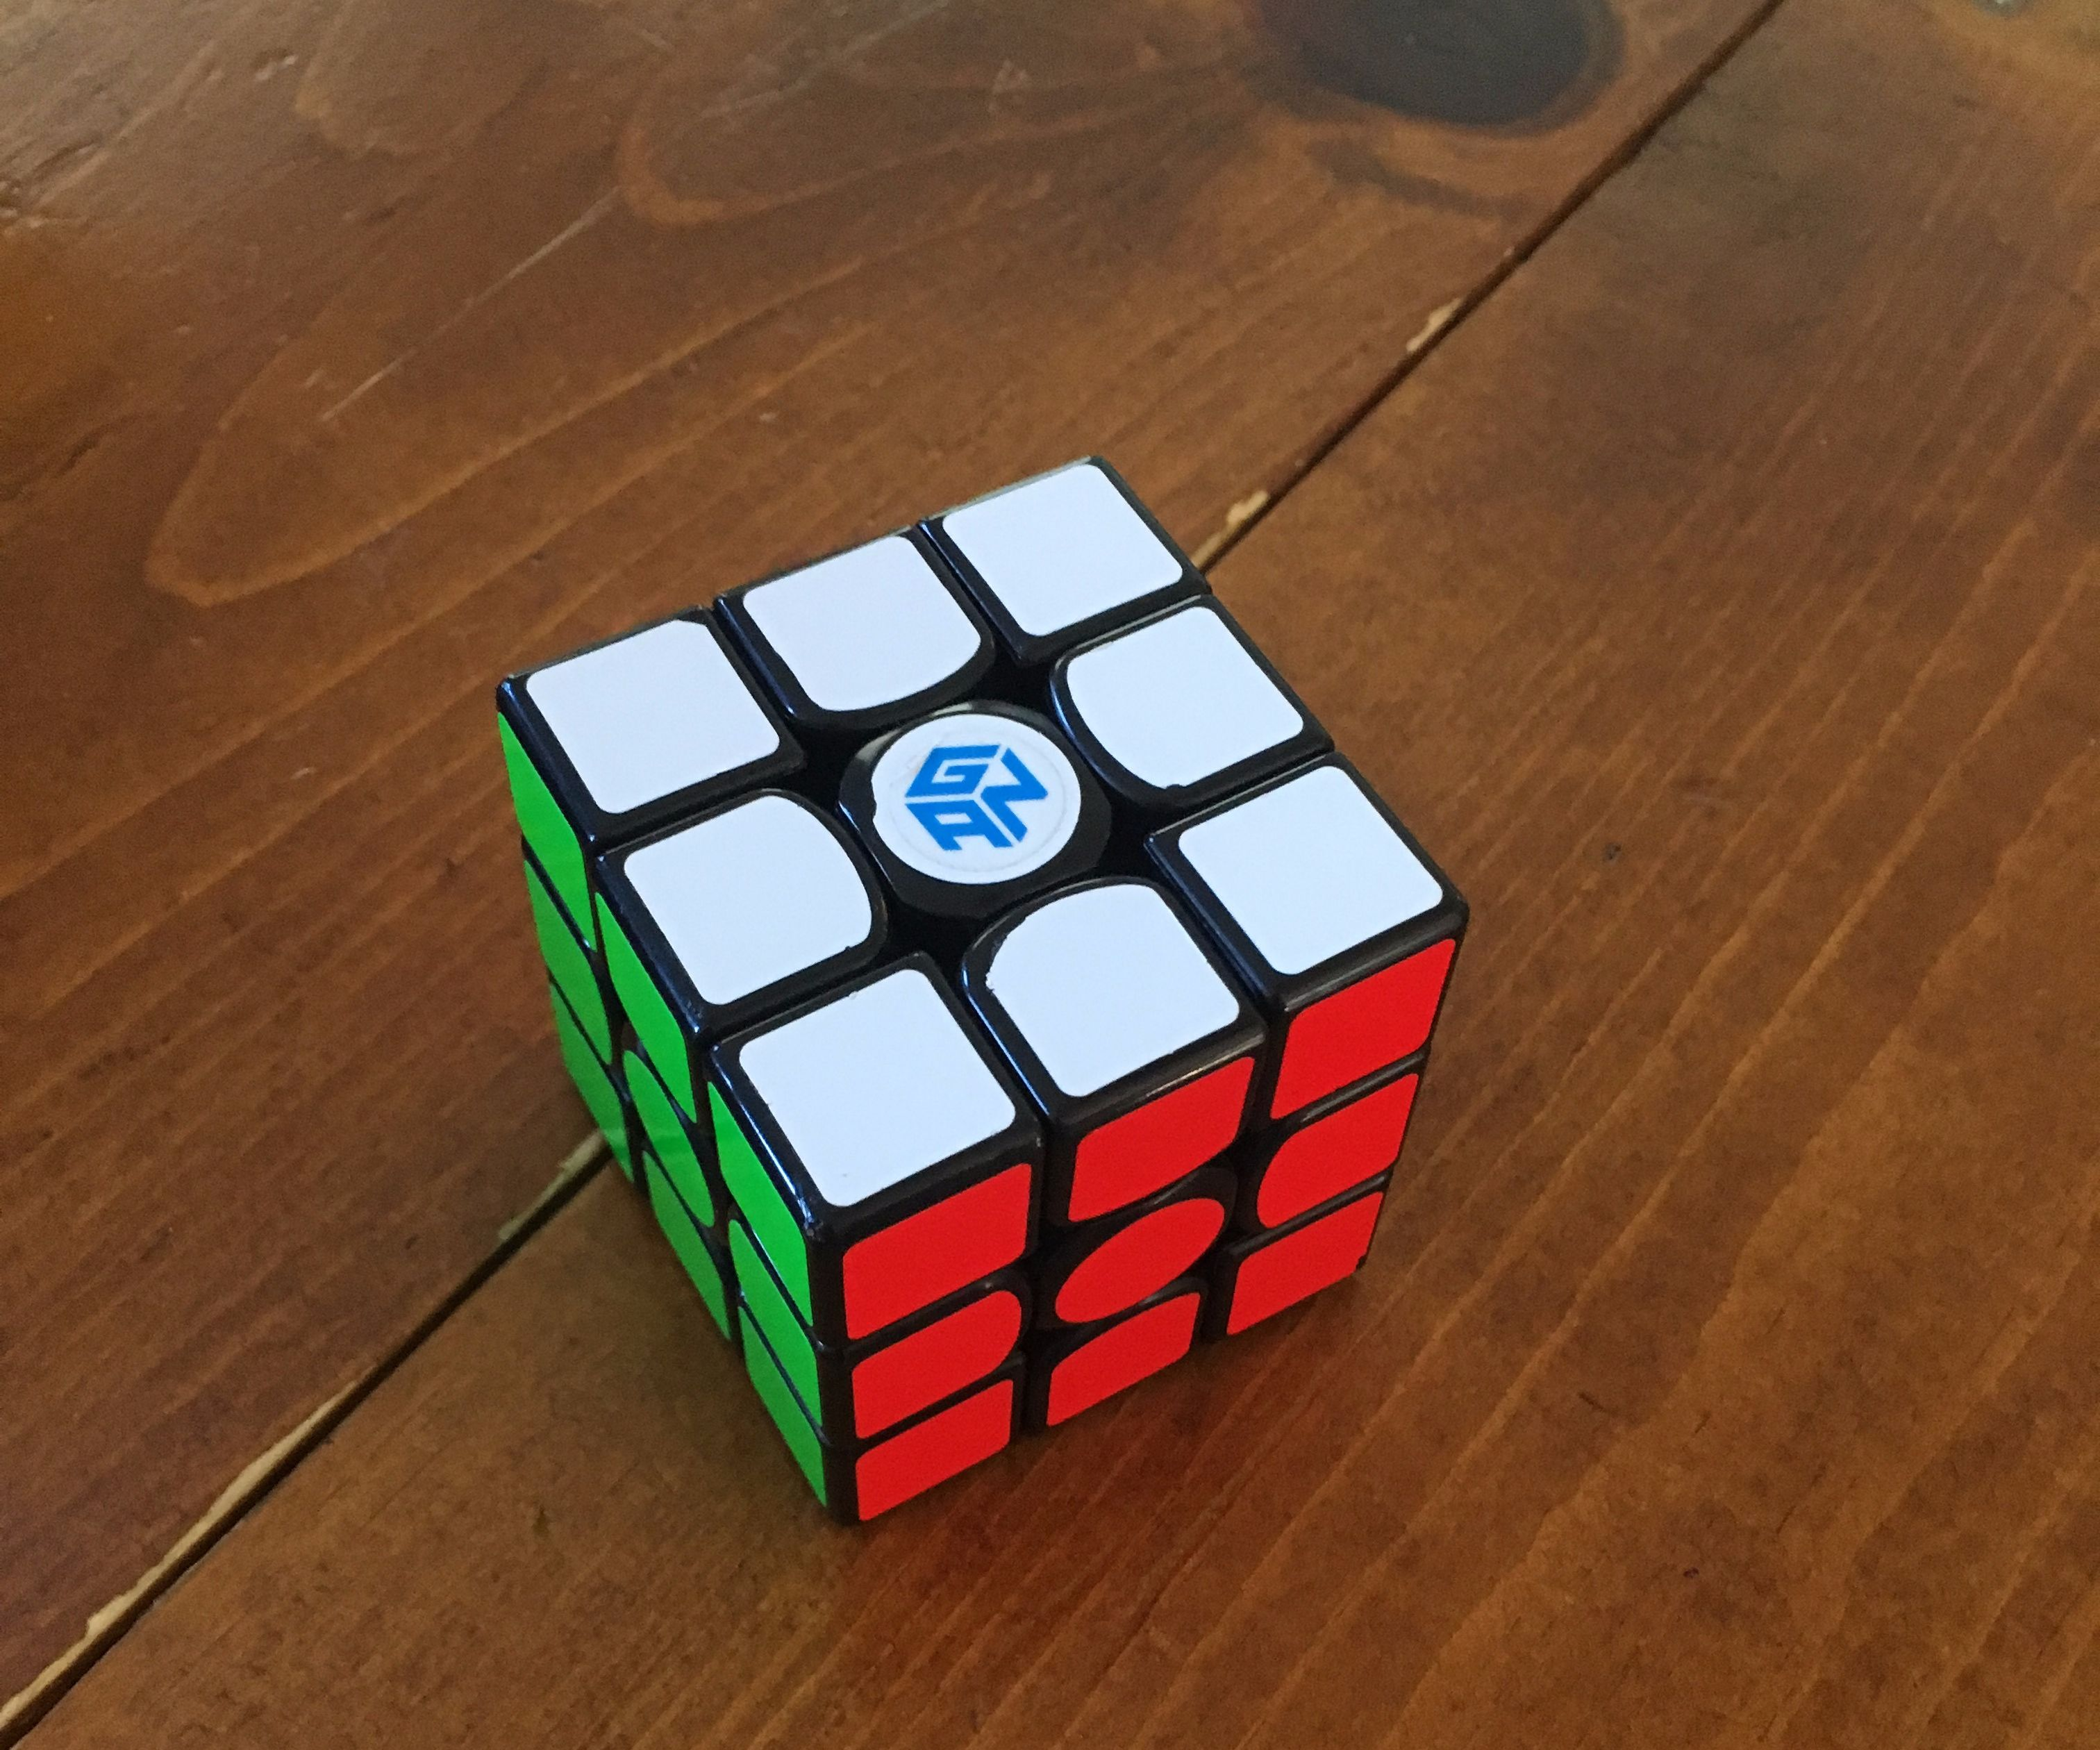 How to Solve the Rubik's Cube (Simplified)